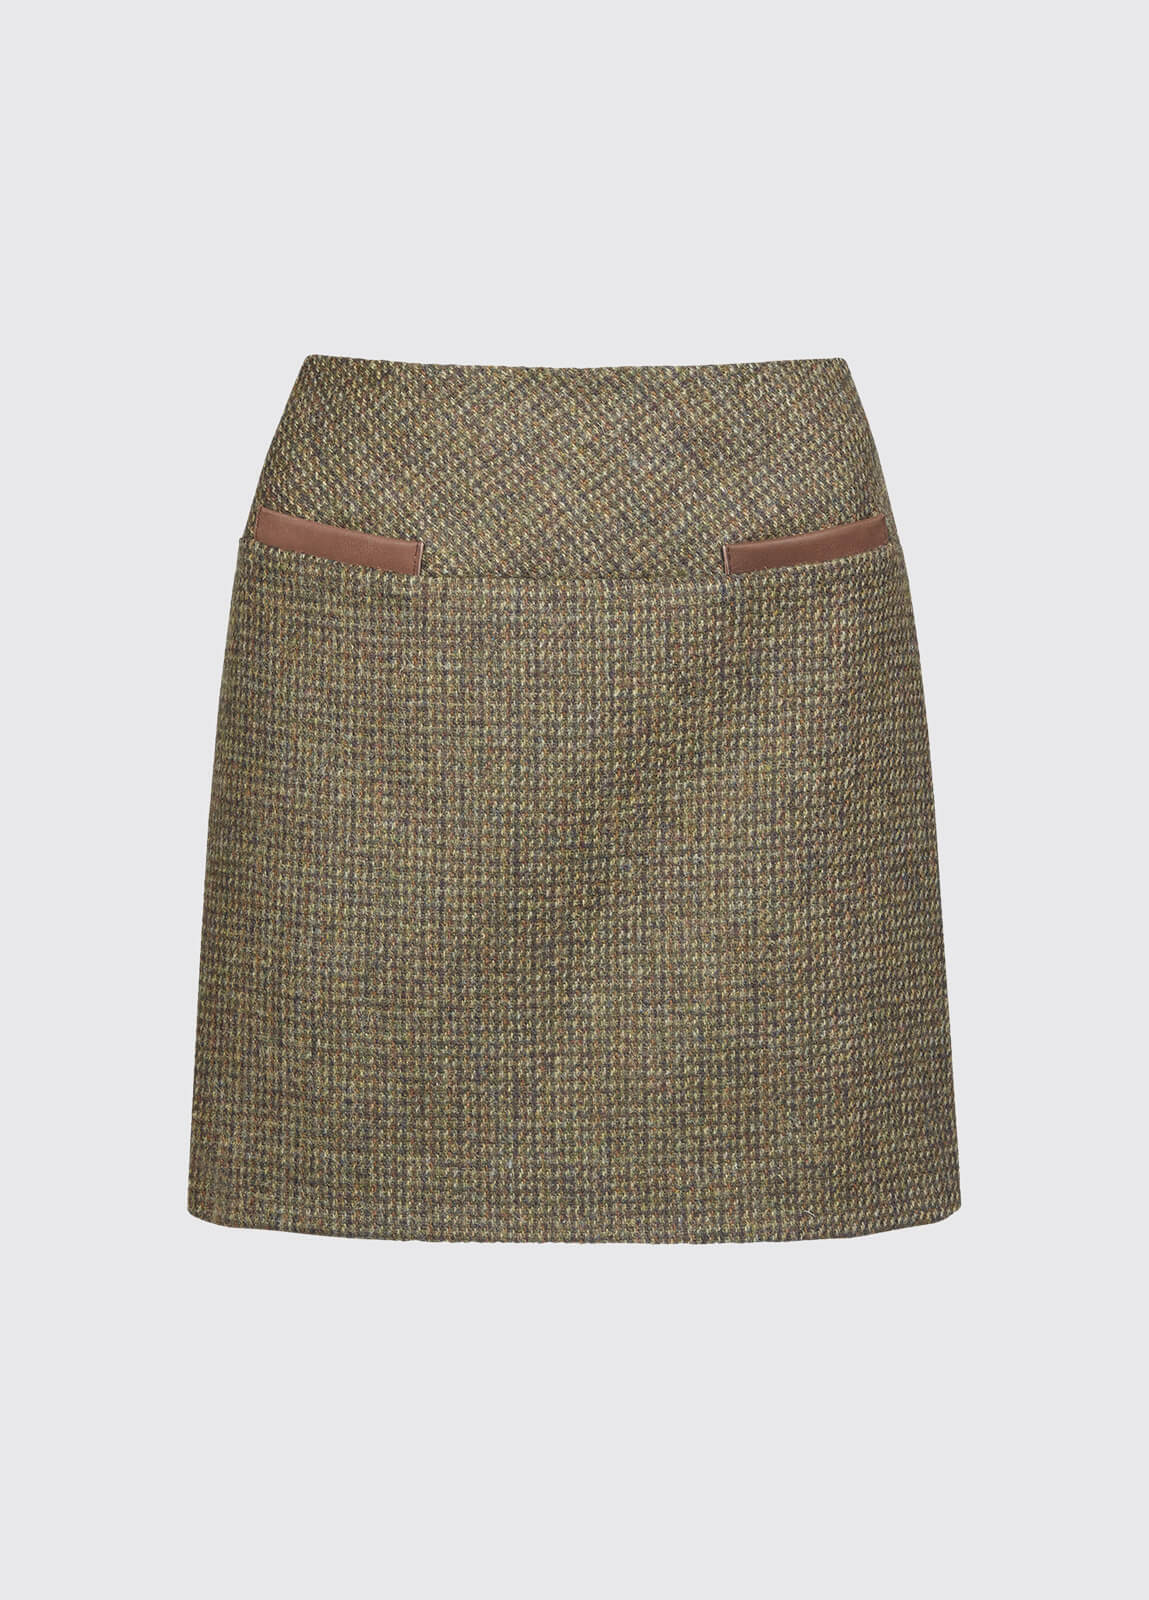 Clover Tweed Mini Skirt - Heath